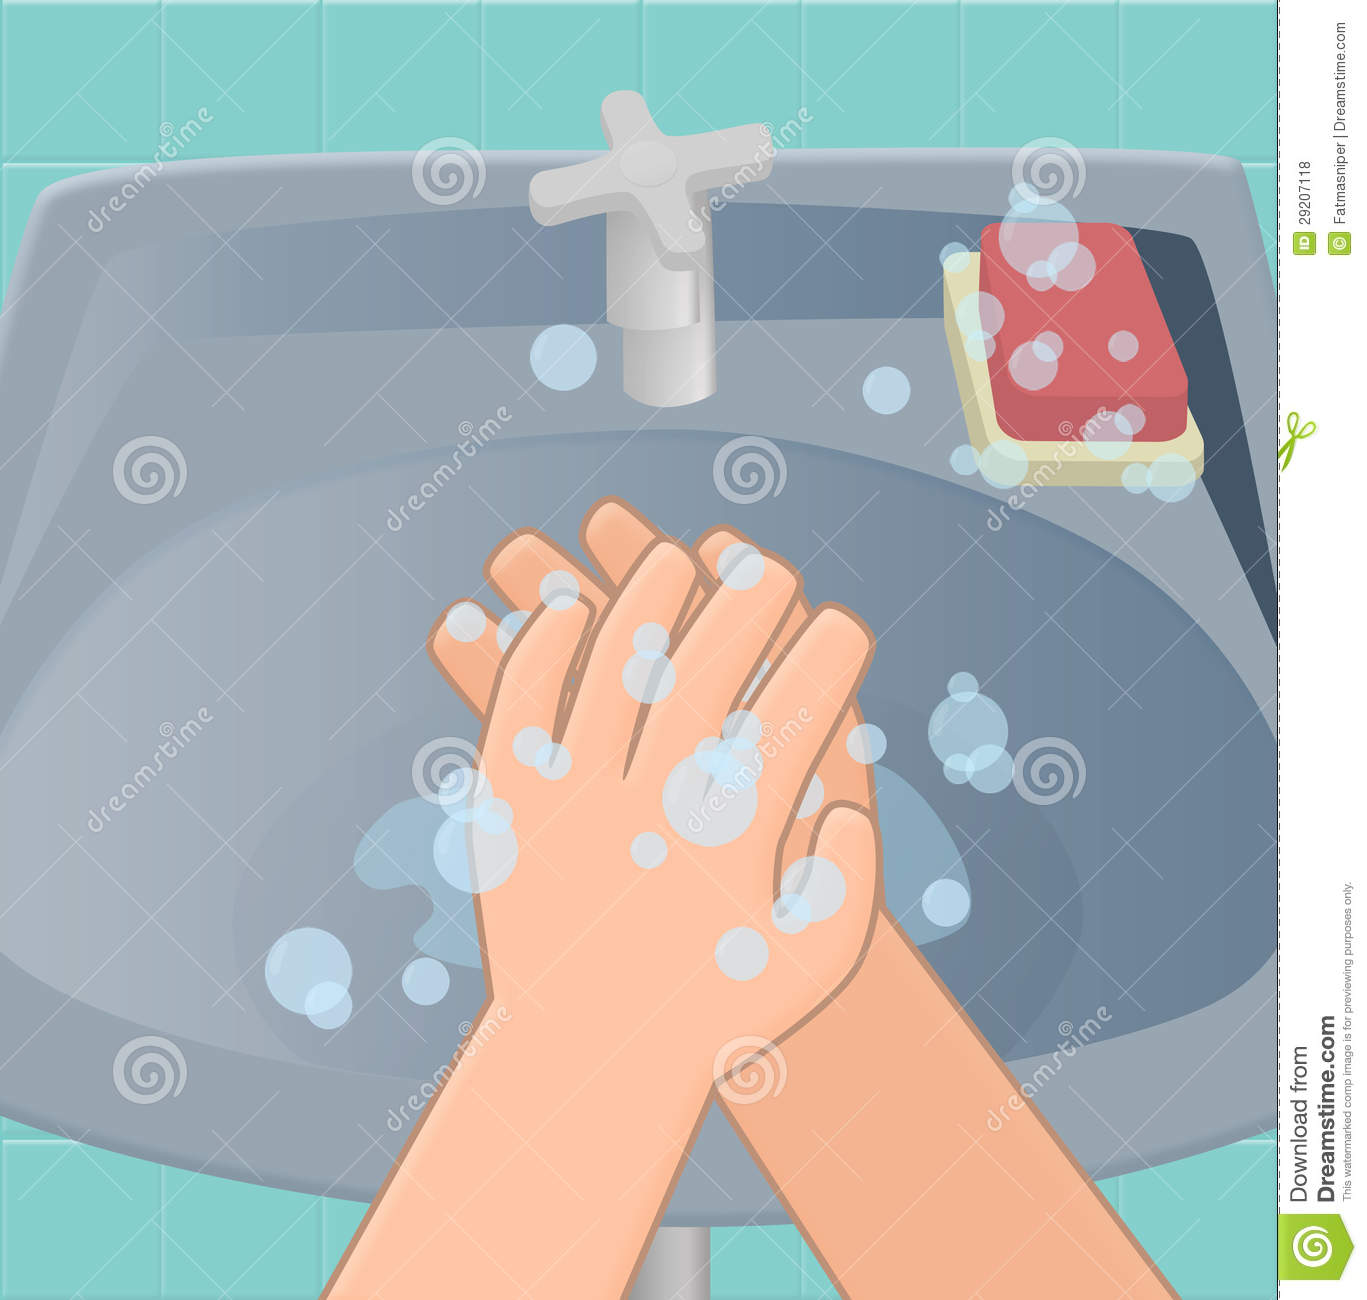 The third stage of washing hands